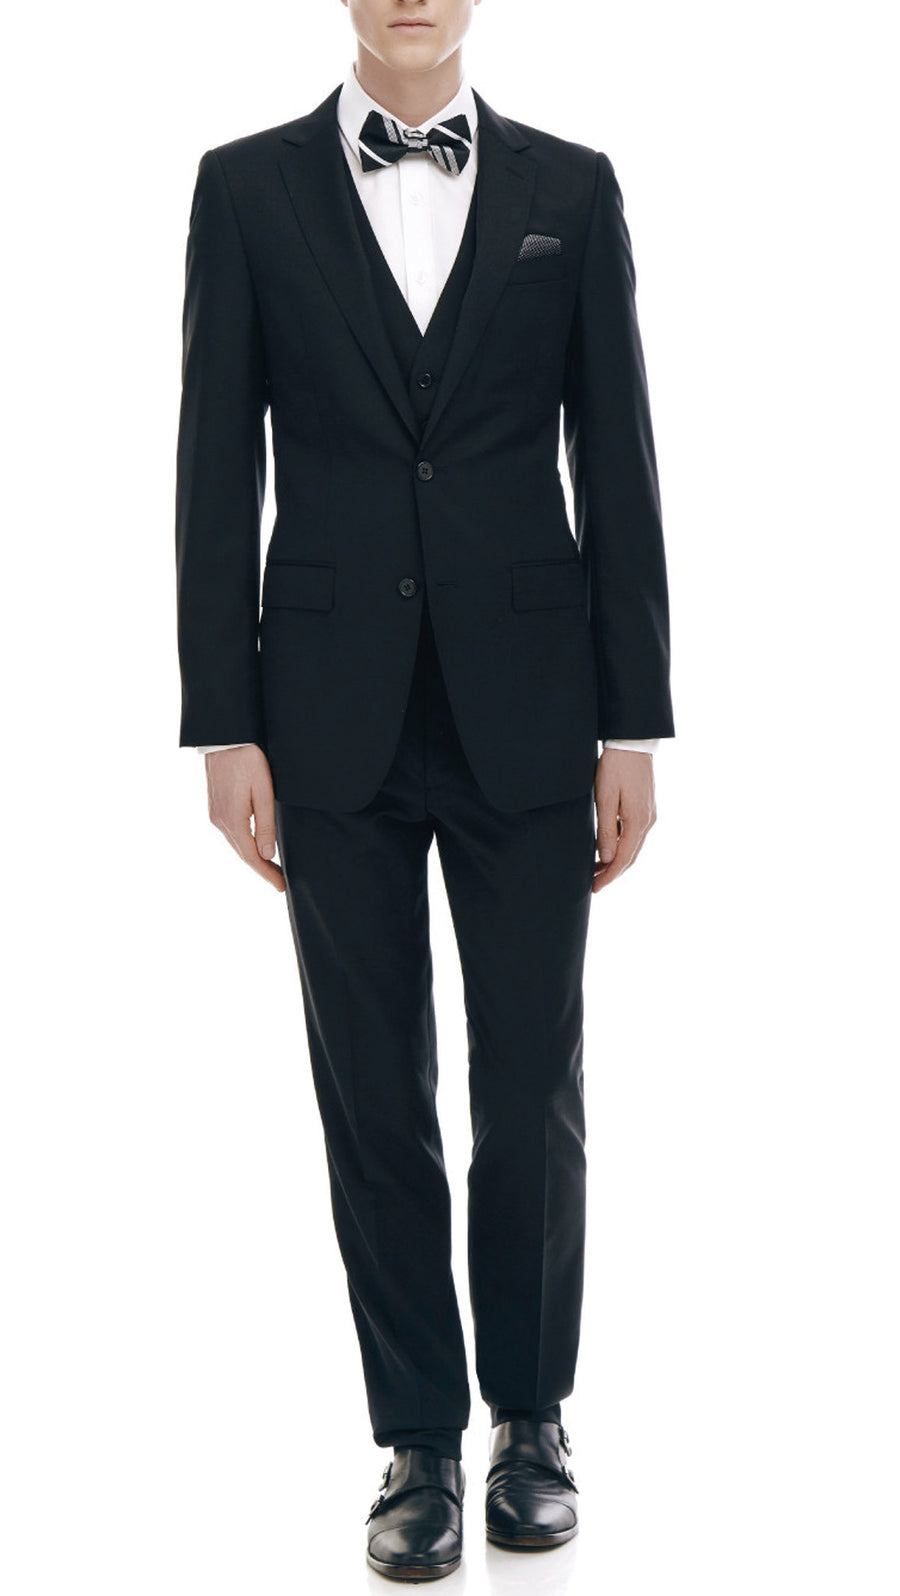 Bell & Barnett Slim Fit Suit in Black